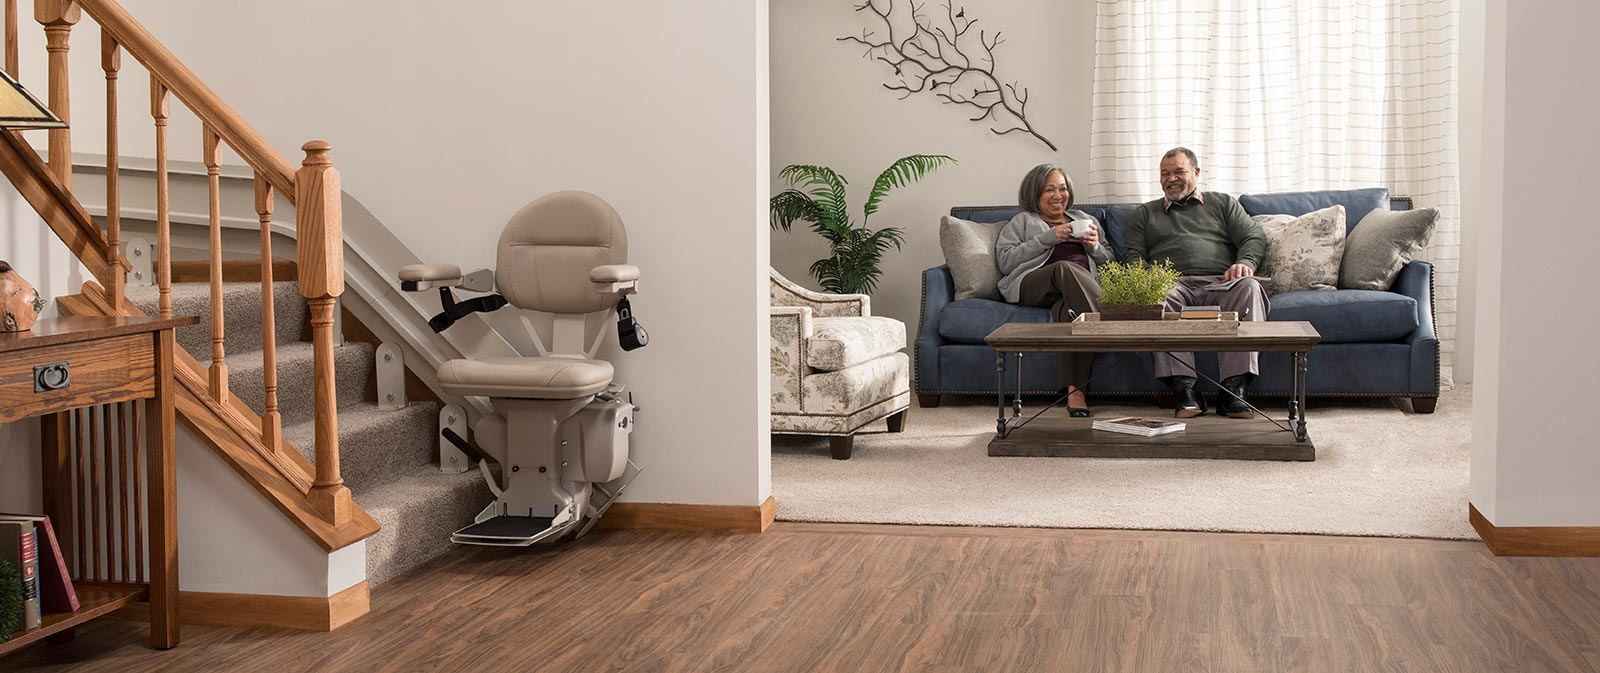 bruno cre2100 custom curved stairlift